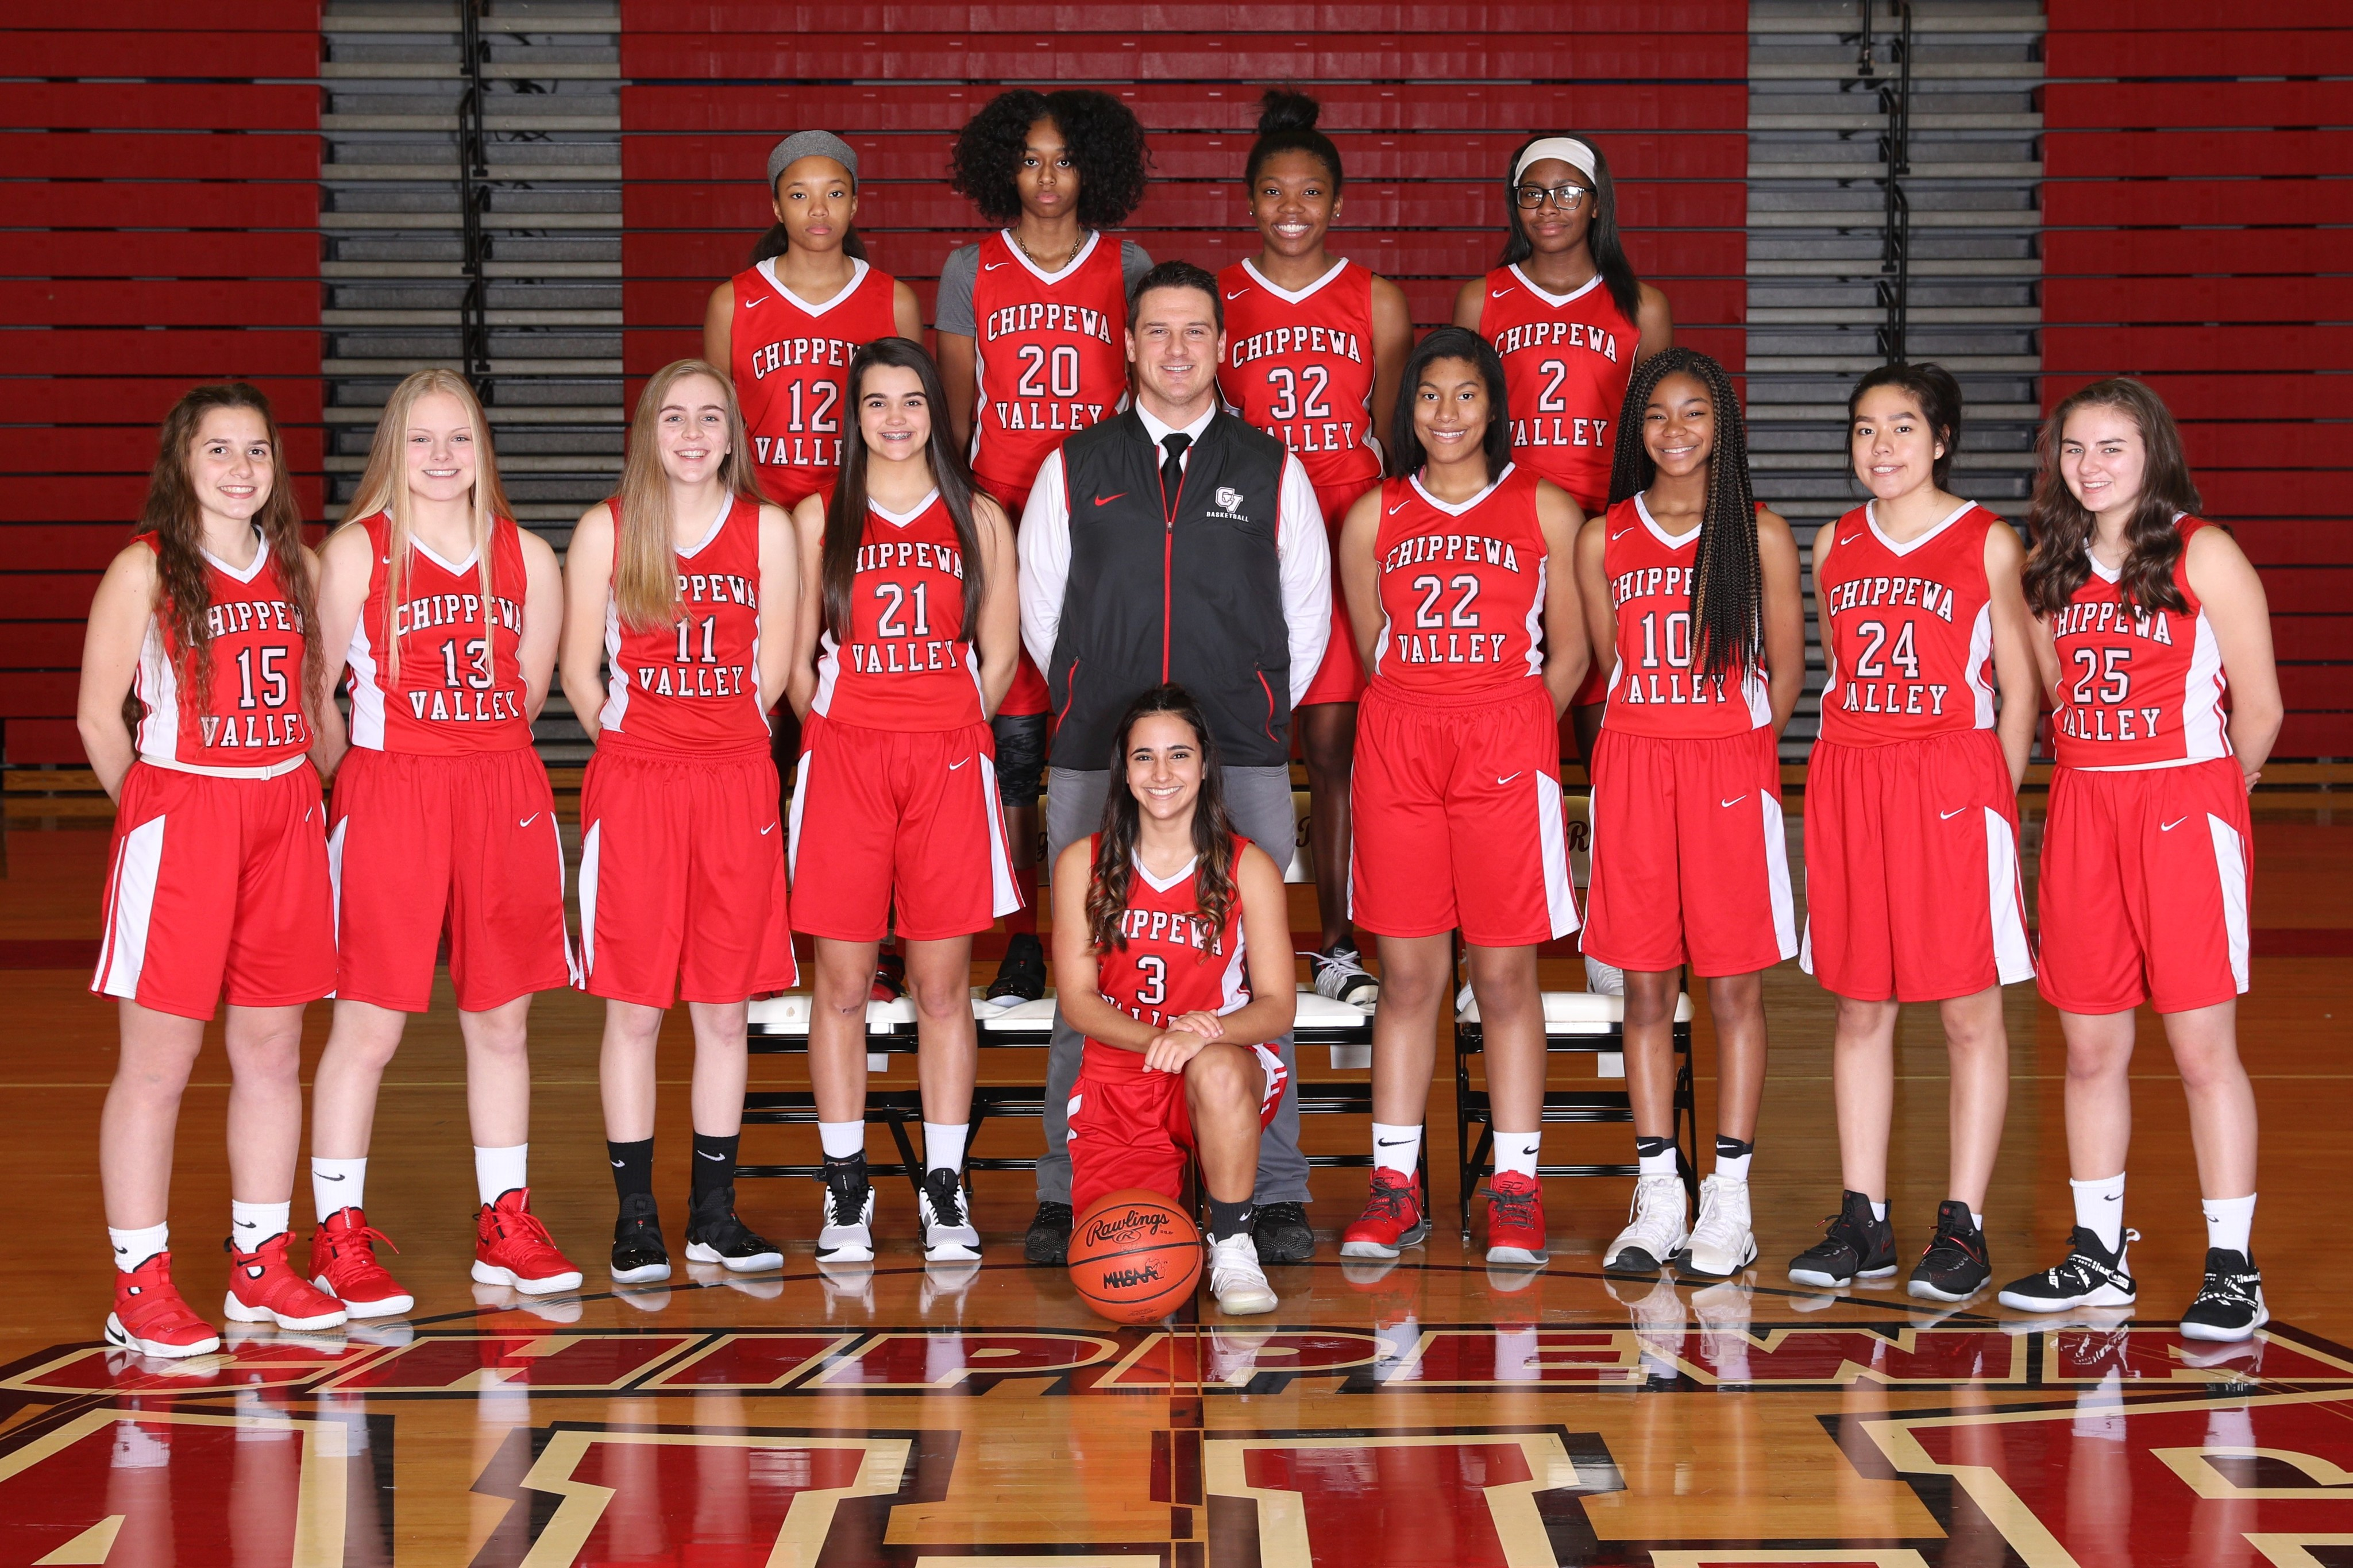 JV Girls Basketball Team Photo